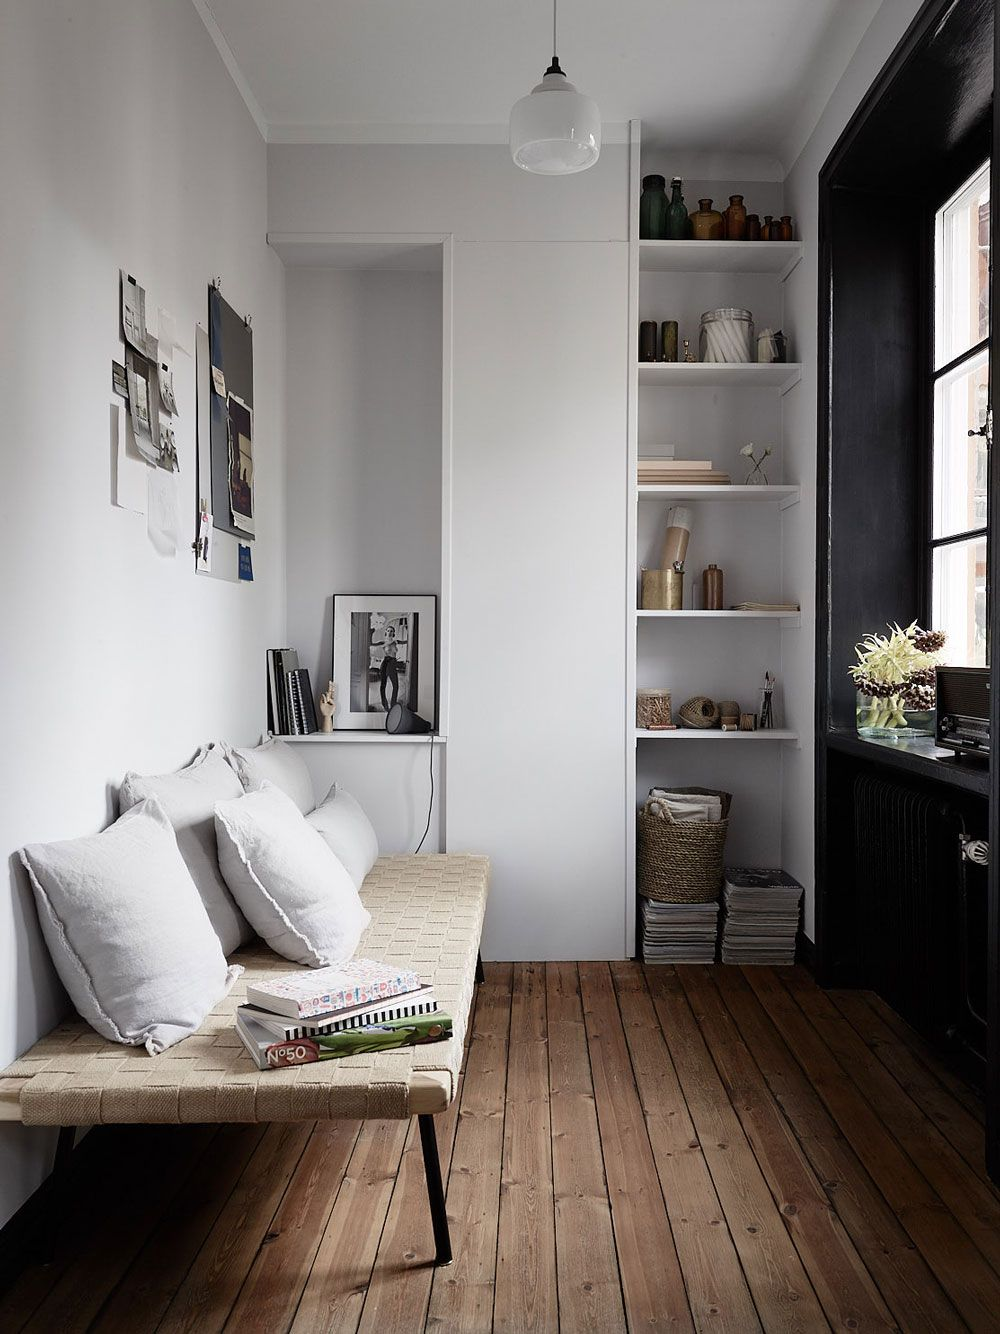 Home interior simple design reading spot  for the home  pinterest  interiors house and spaces